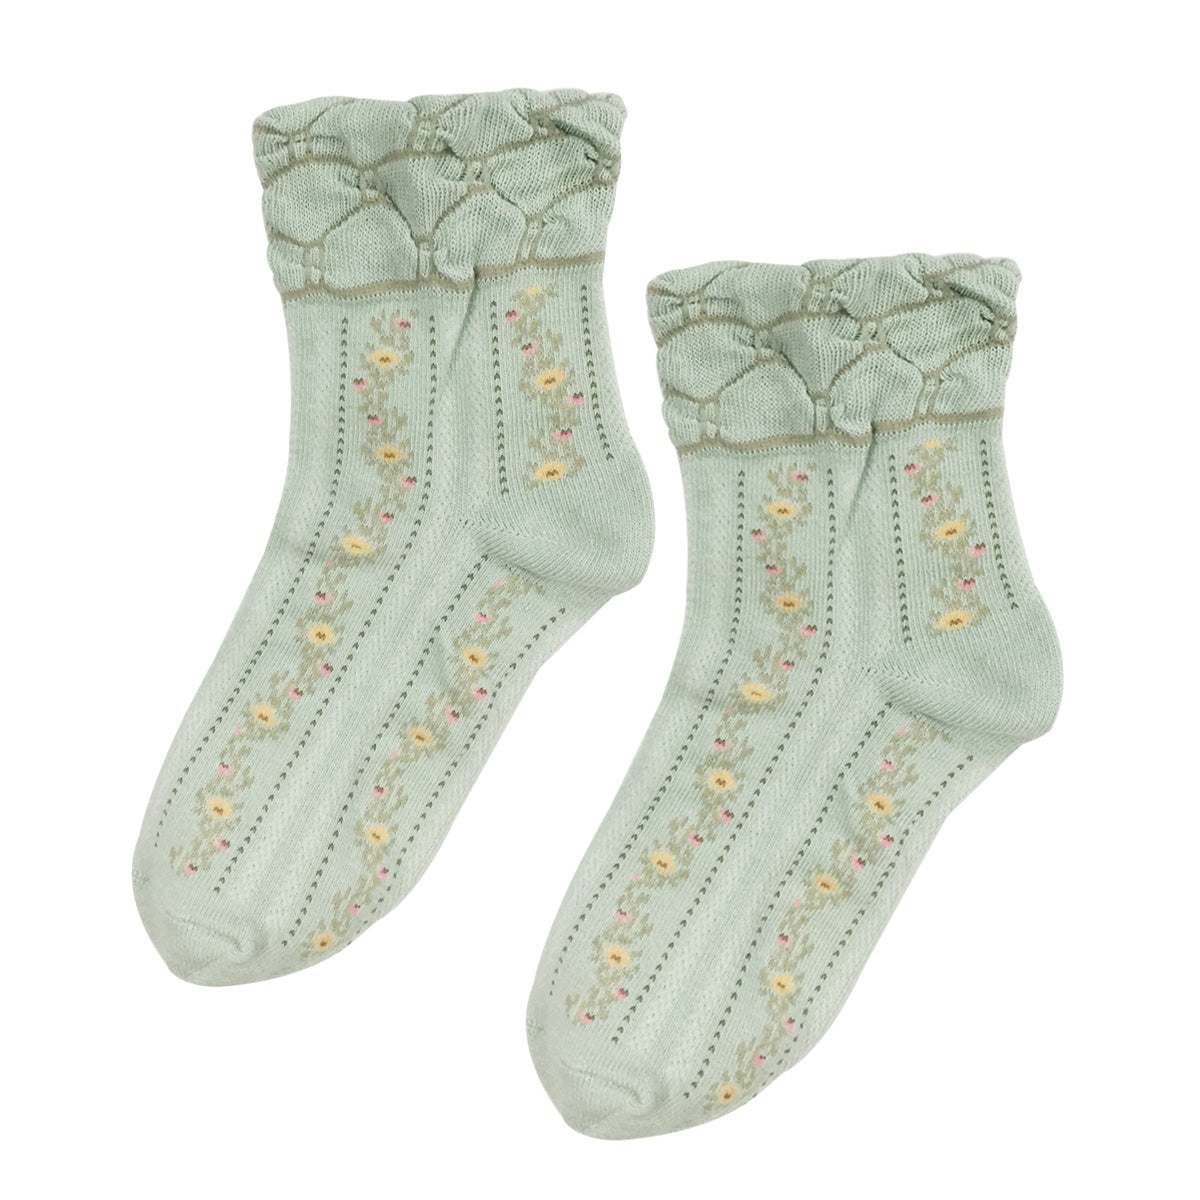 Wrapables Women's Vintage Floral Socks (Set of 3)